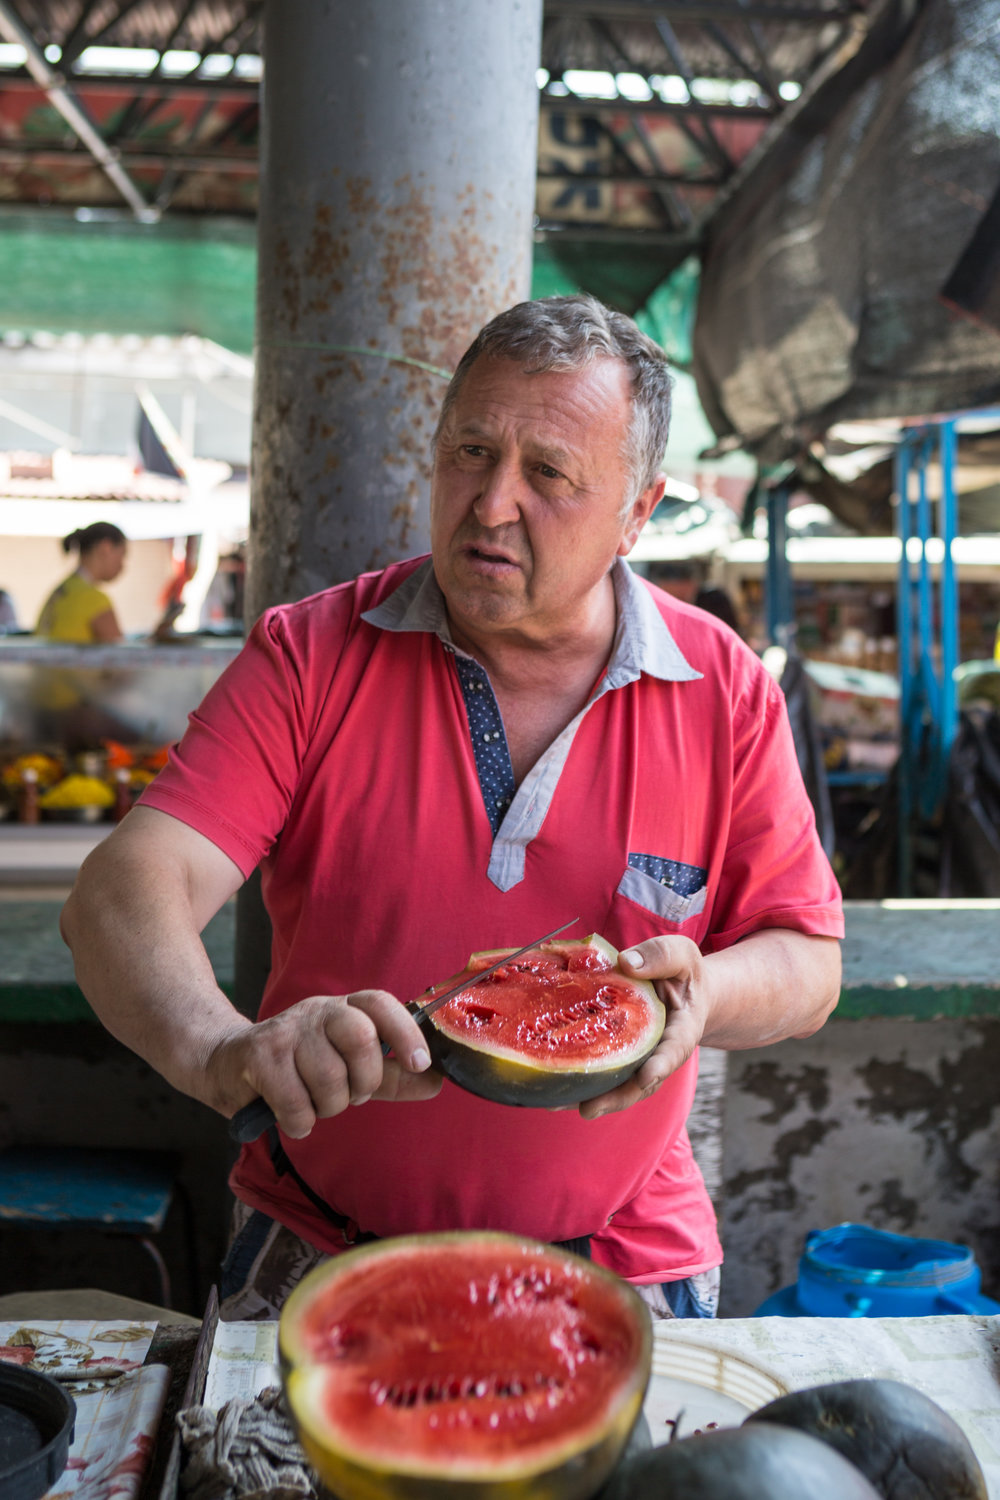 Chisinau_market_pickled watermelon2.jpg